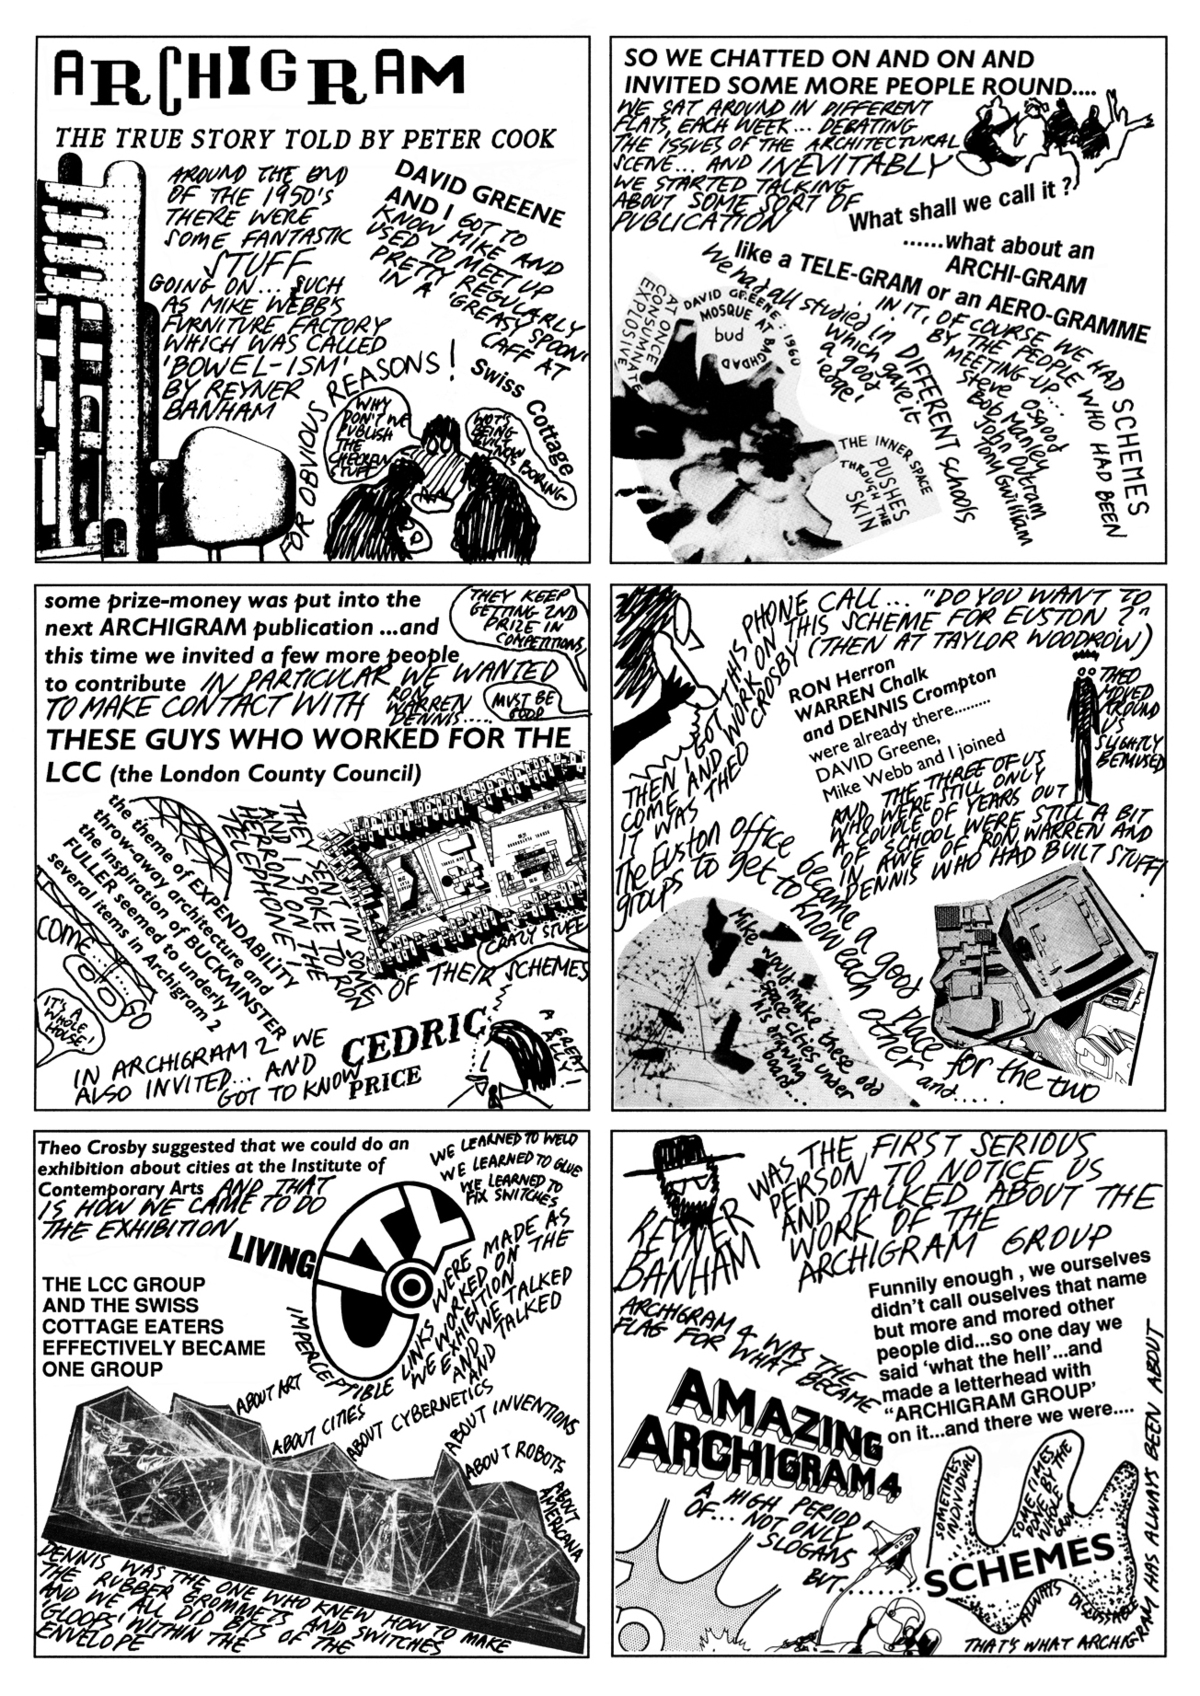 Archigram, The True Story Told by Peter Cook. Image courtesy of Peter Cook.